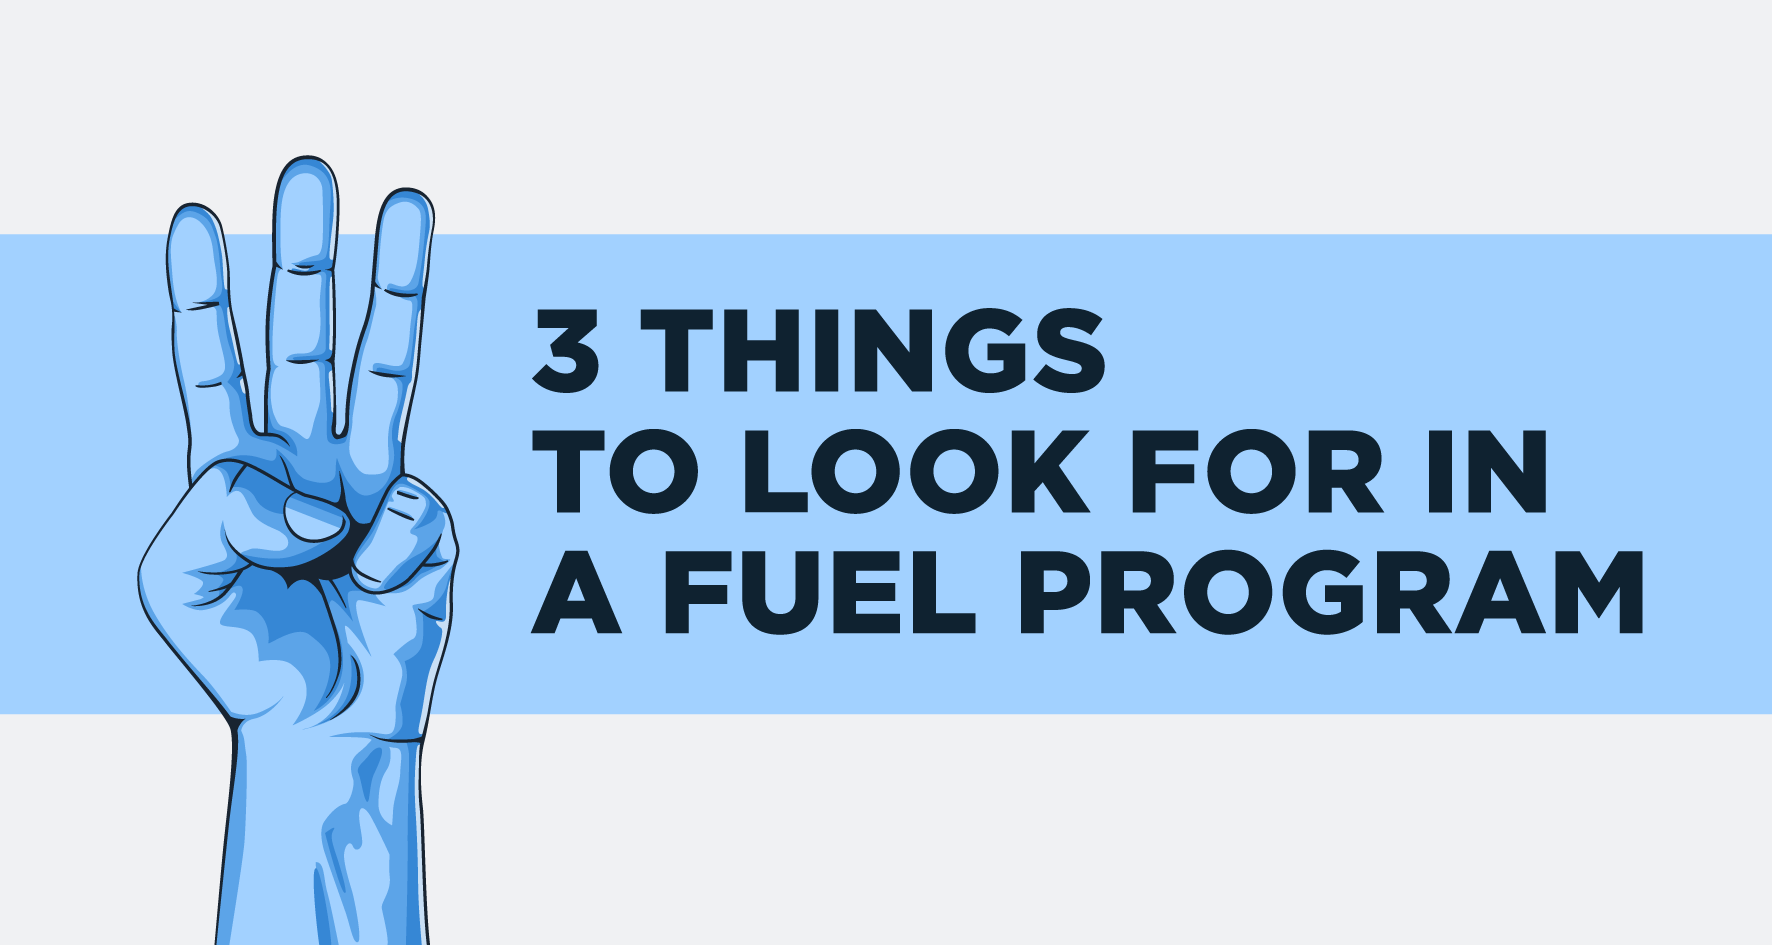 3 Things to Look for in a Fuel Program